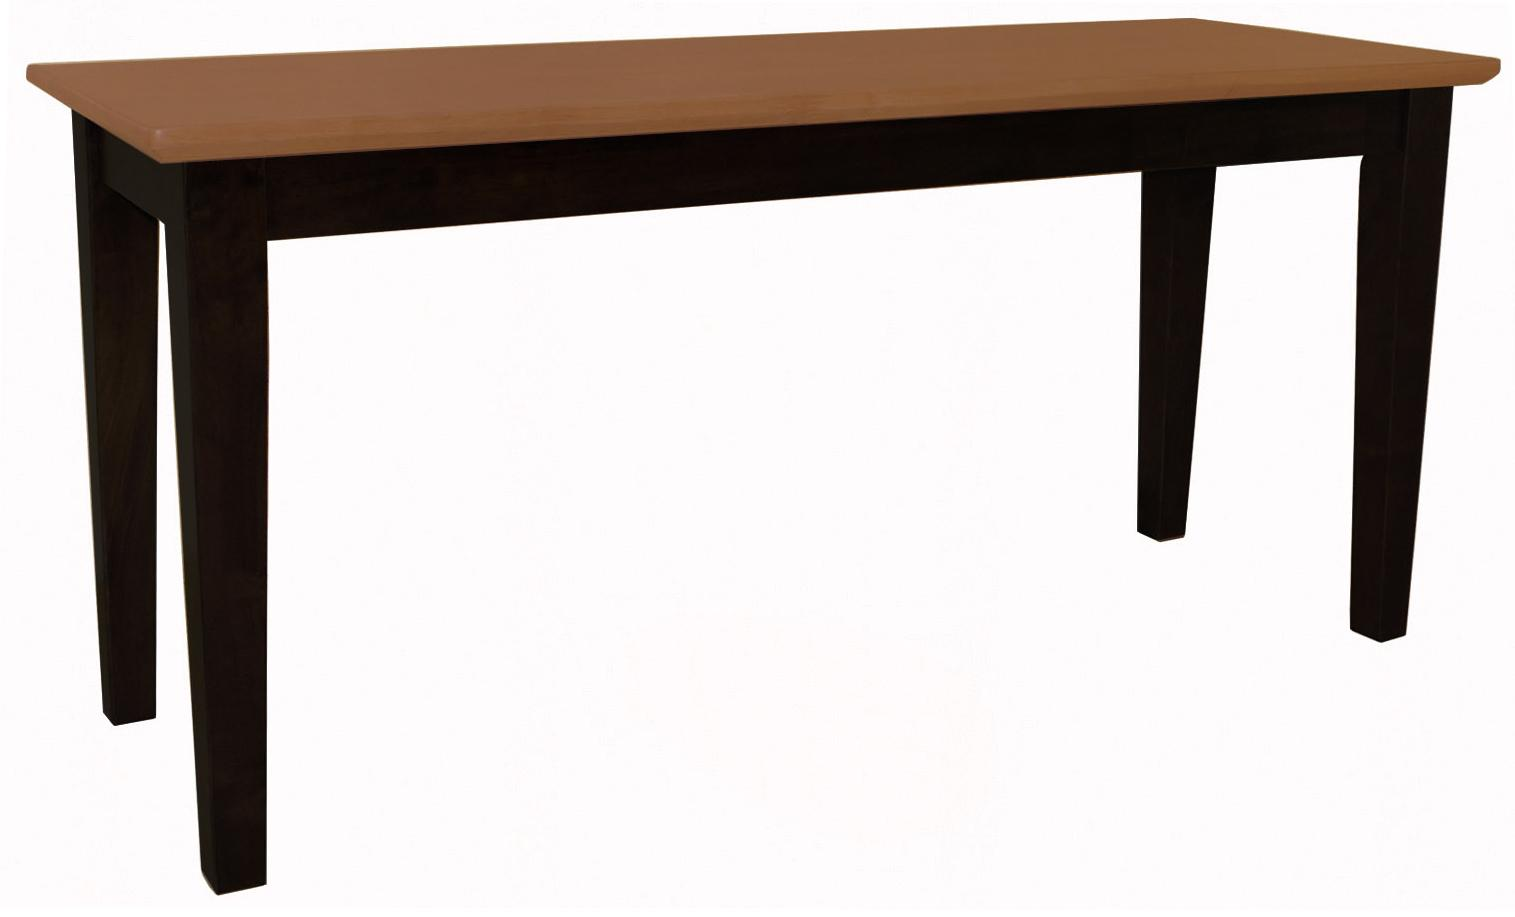 John thomas dining essentials contemporary dining bench for Dining room essentials